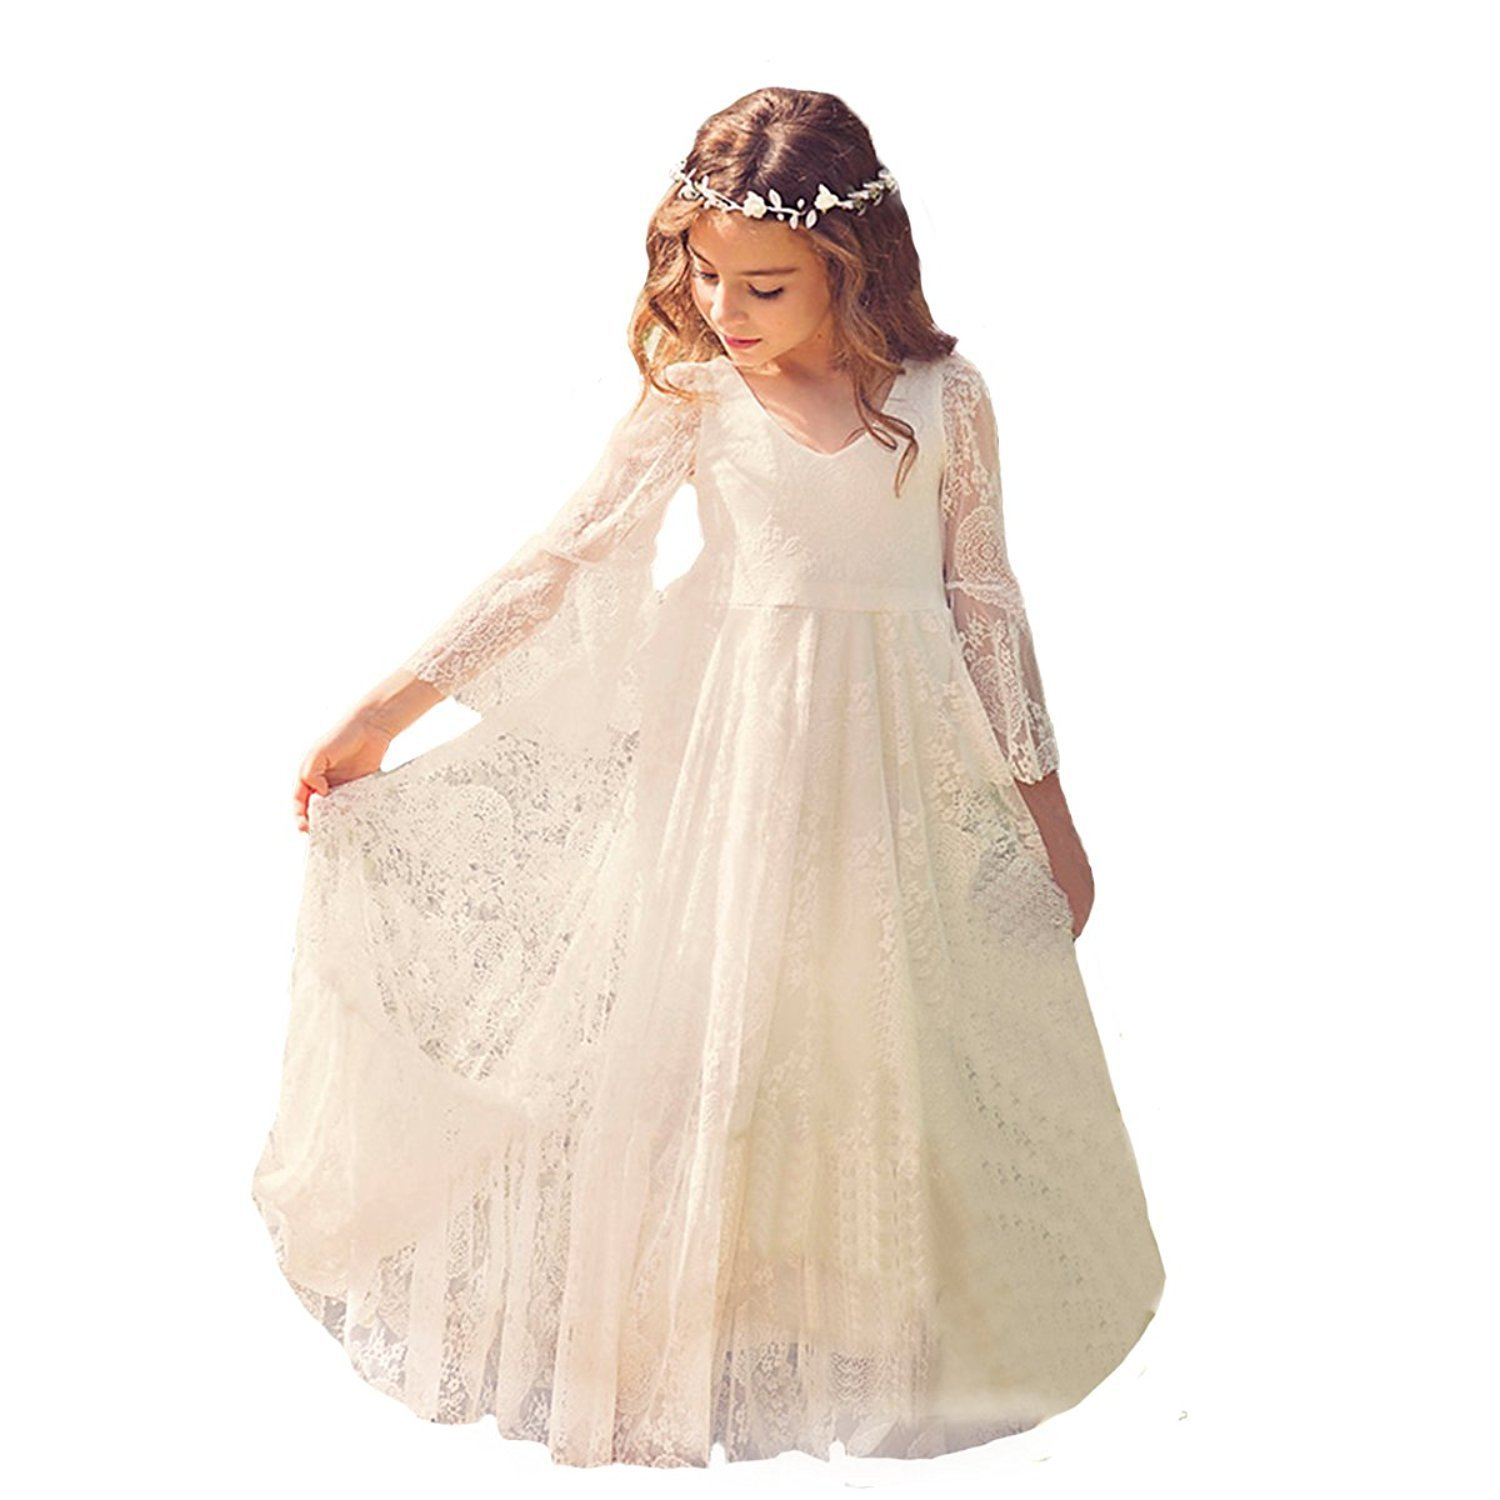 98f703627ec Amazon.com  Fancy A-line Lace Flower Girl Dress 2-12 Year Old  Clothing